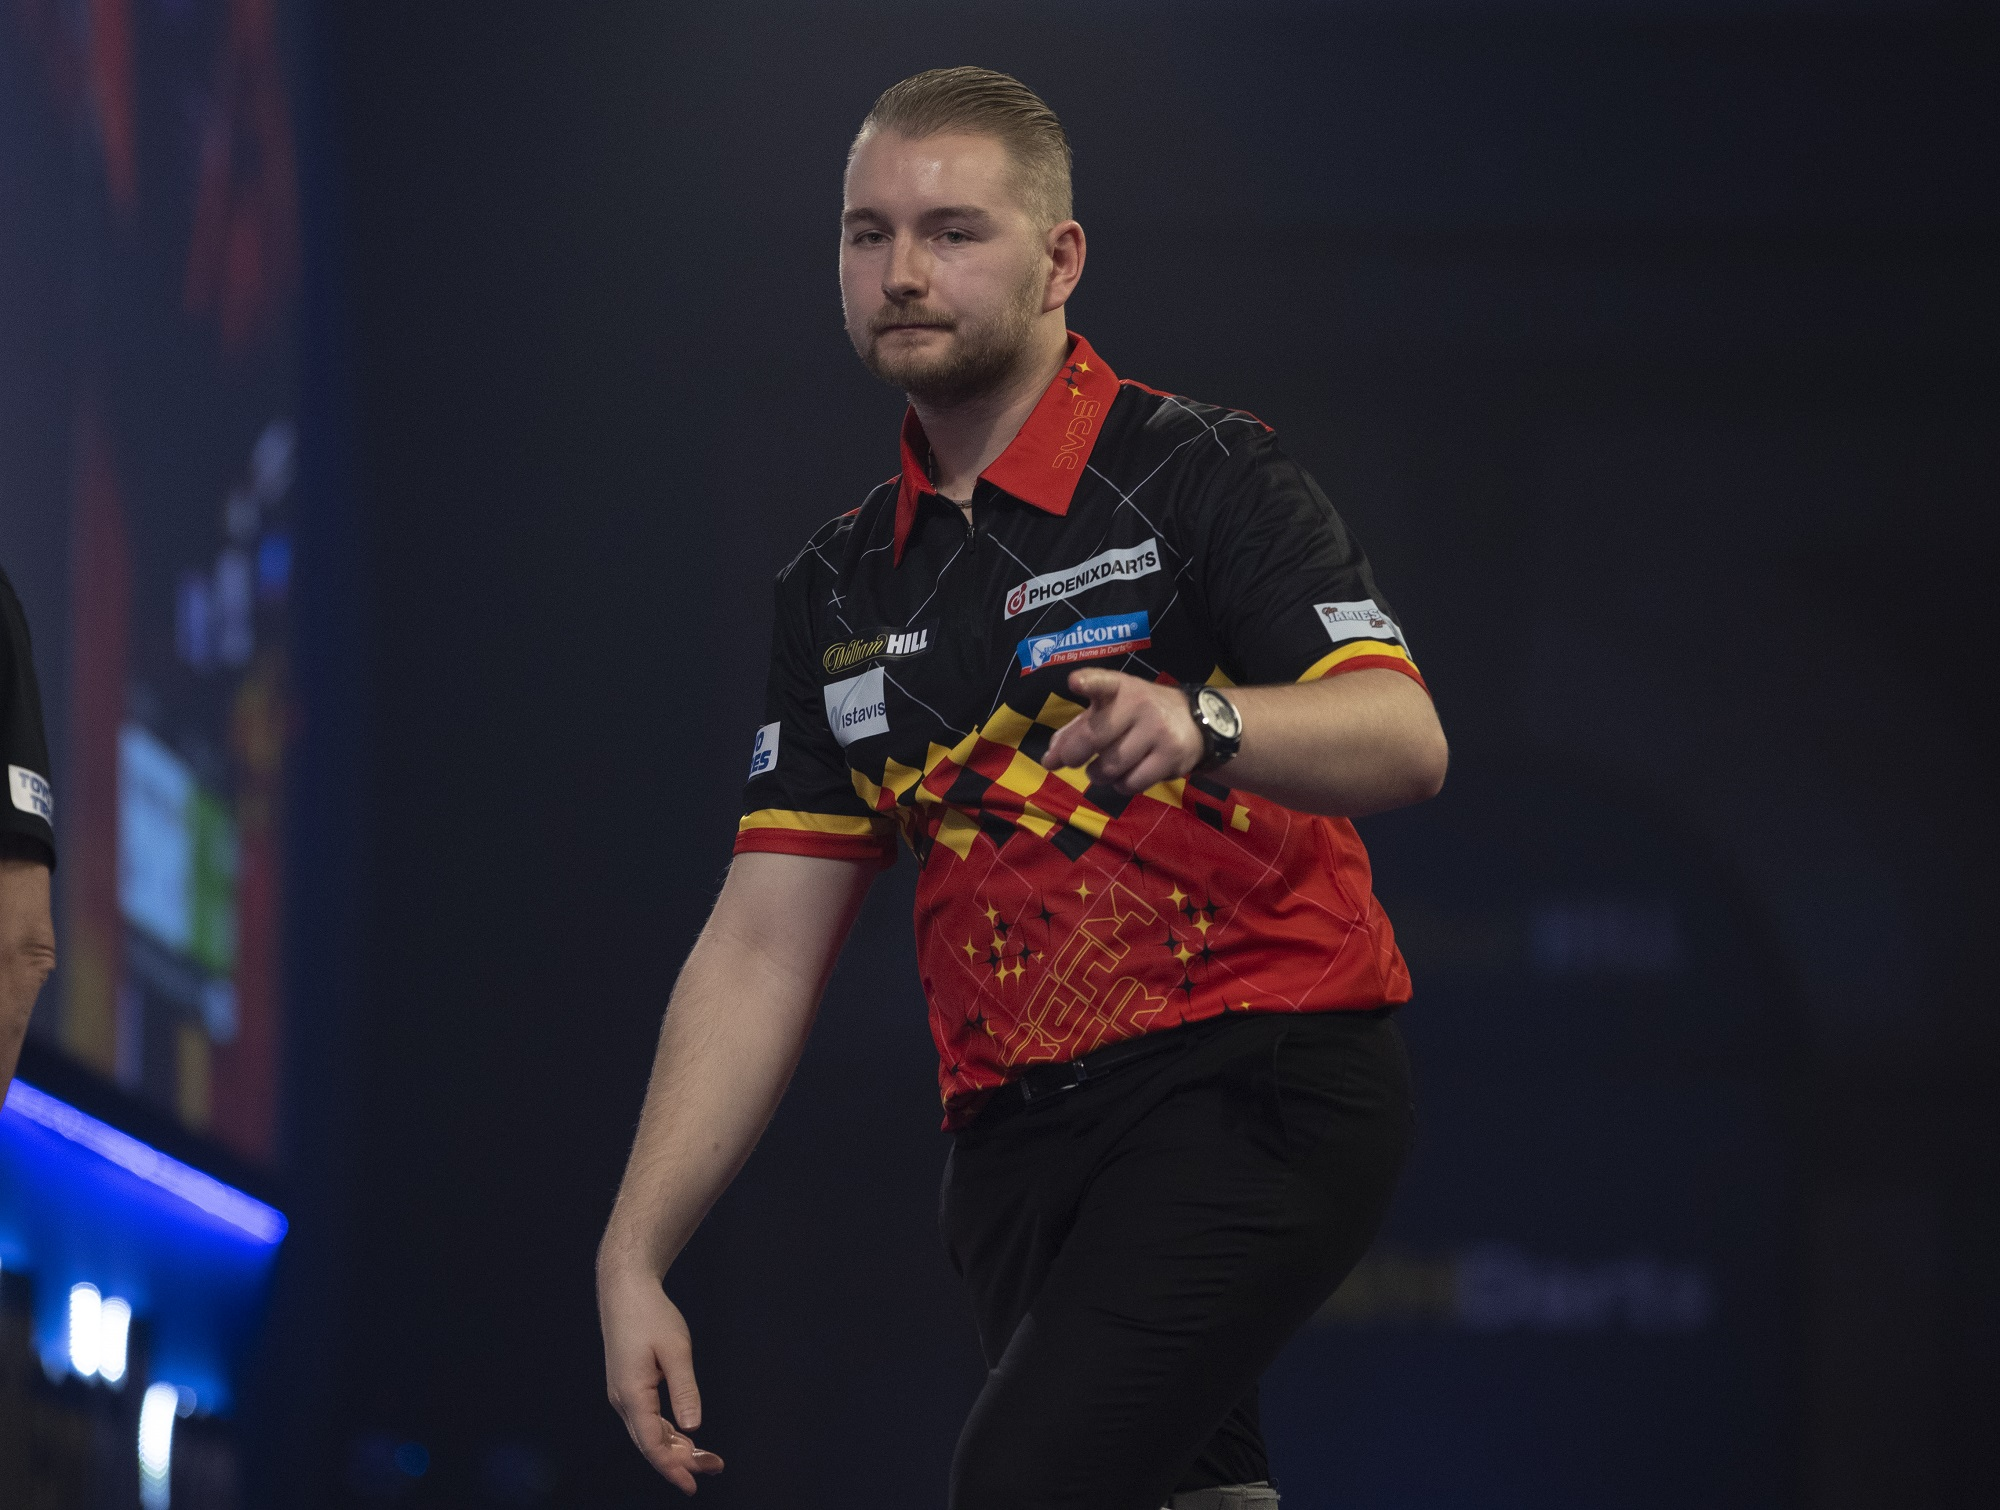 """Premier League Darts 2021 Preview: """"Dimitri Van den Bergh looks to dazzle on stage once again"""""""